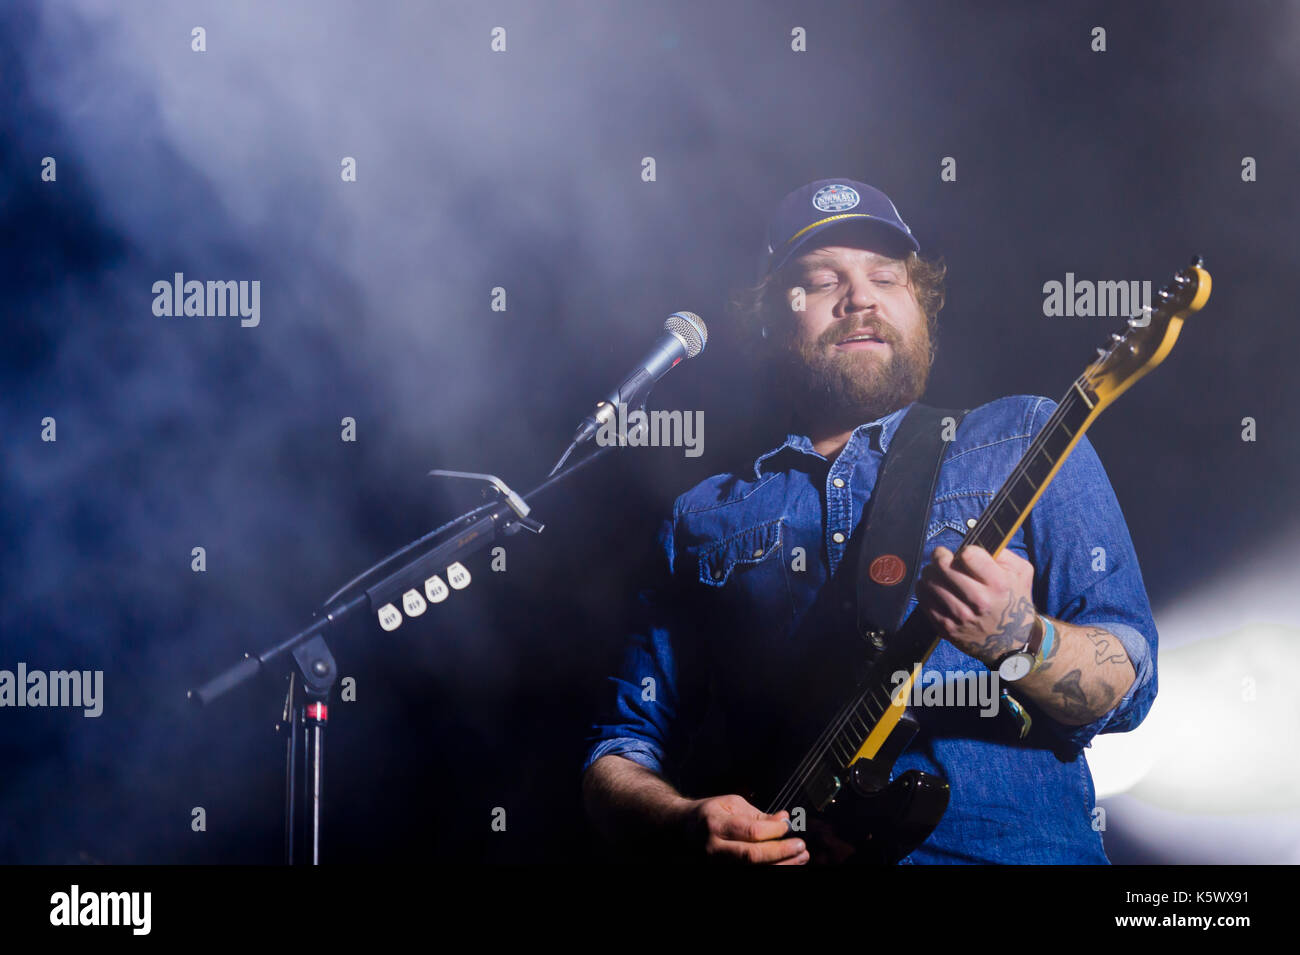 Thornhill, Schottland, Großbritannien - 1 September, 2017: Scott Hutchison von Scottish indie rock Band verängstigten Kaninchen dachverkleidung Tag 1 von elektrischen Feldern Festiva Stockbild